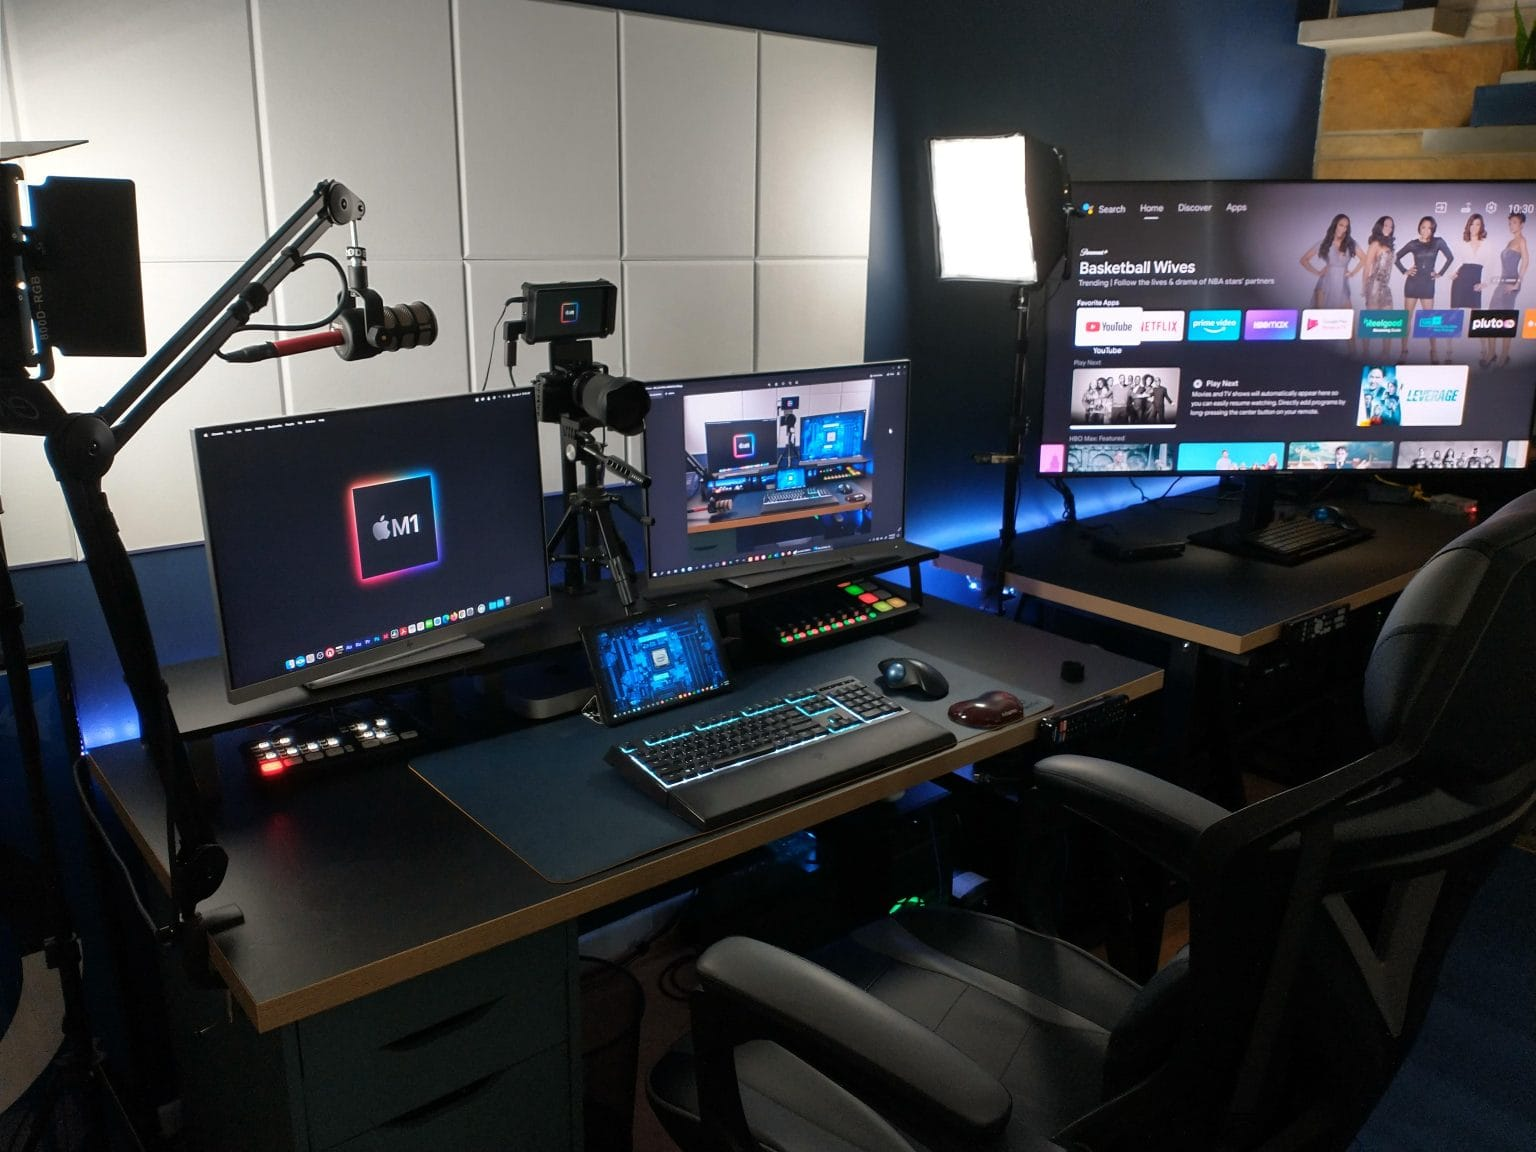 Browsing, remote tech support work, gaming, videoconferencing, podcasting -- this setup does it all.